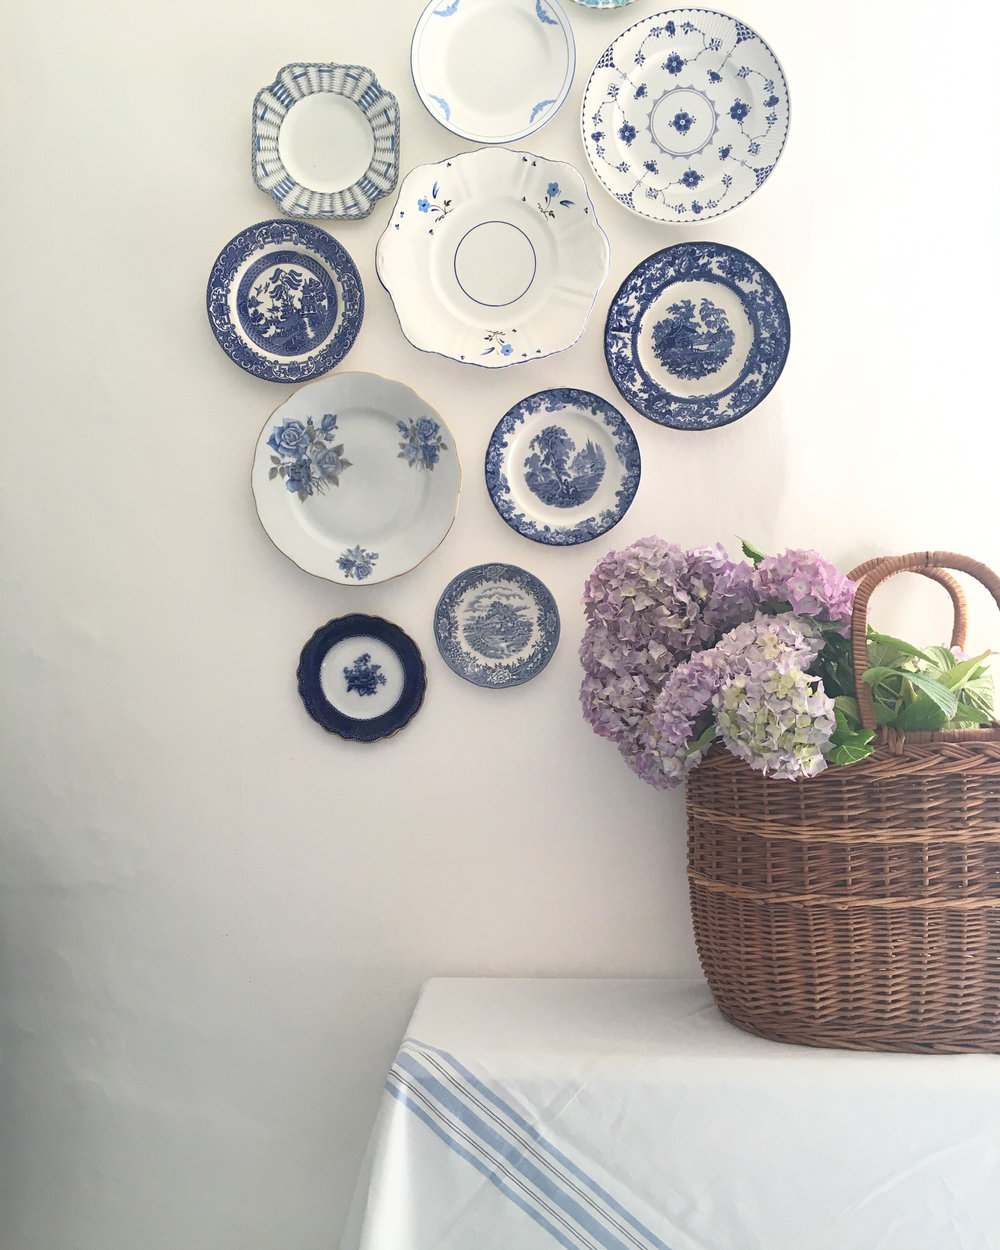 I collected blue & white plates for quite a while to build up this collection, and some of these beauties were found at boot sales.